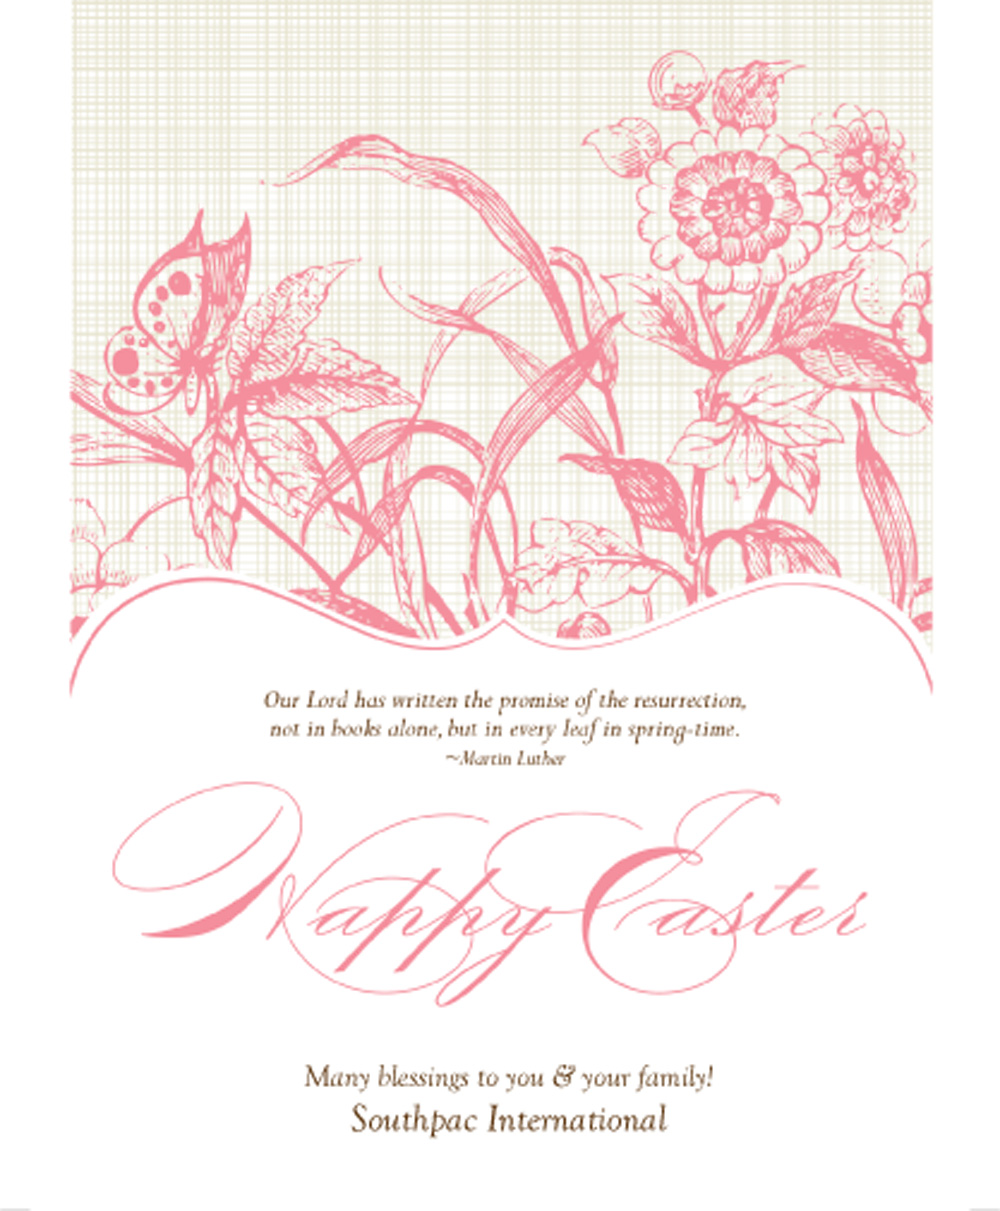 easter holiday notice - april 2011